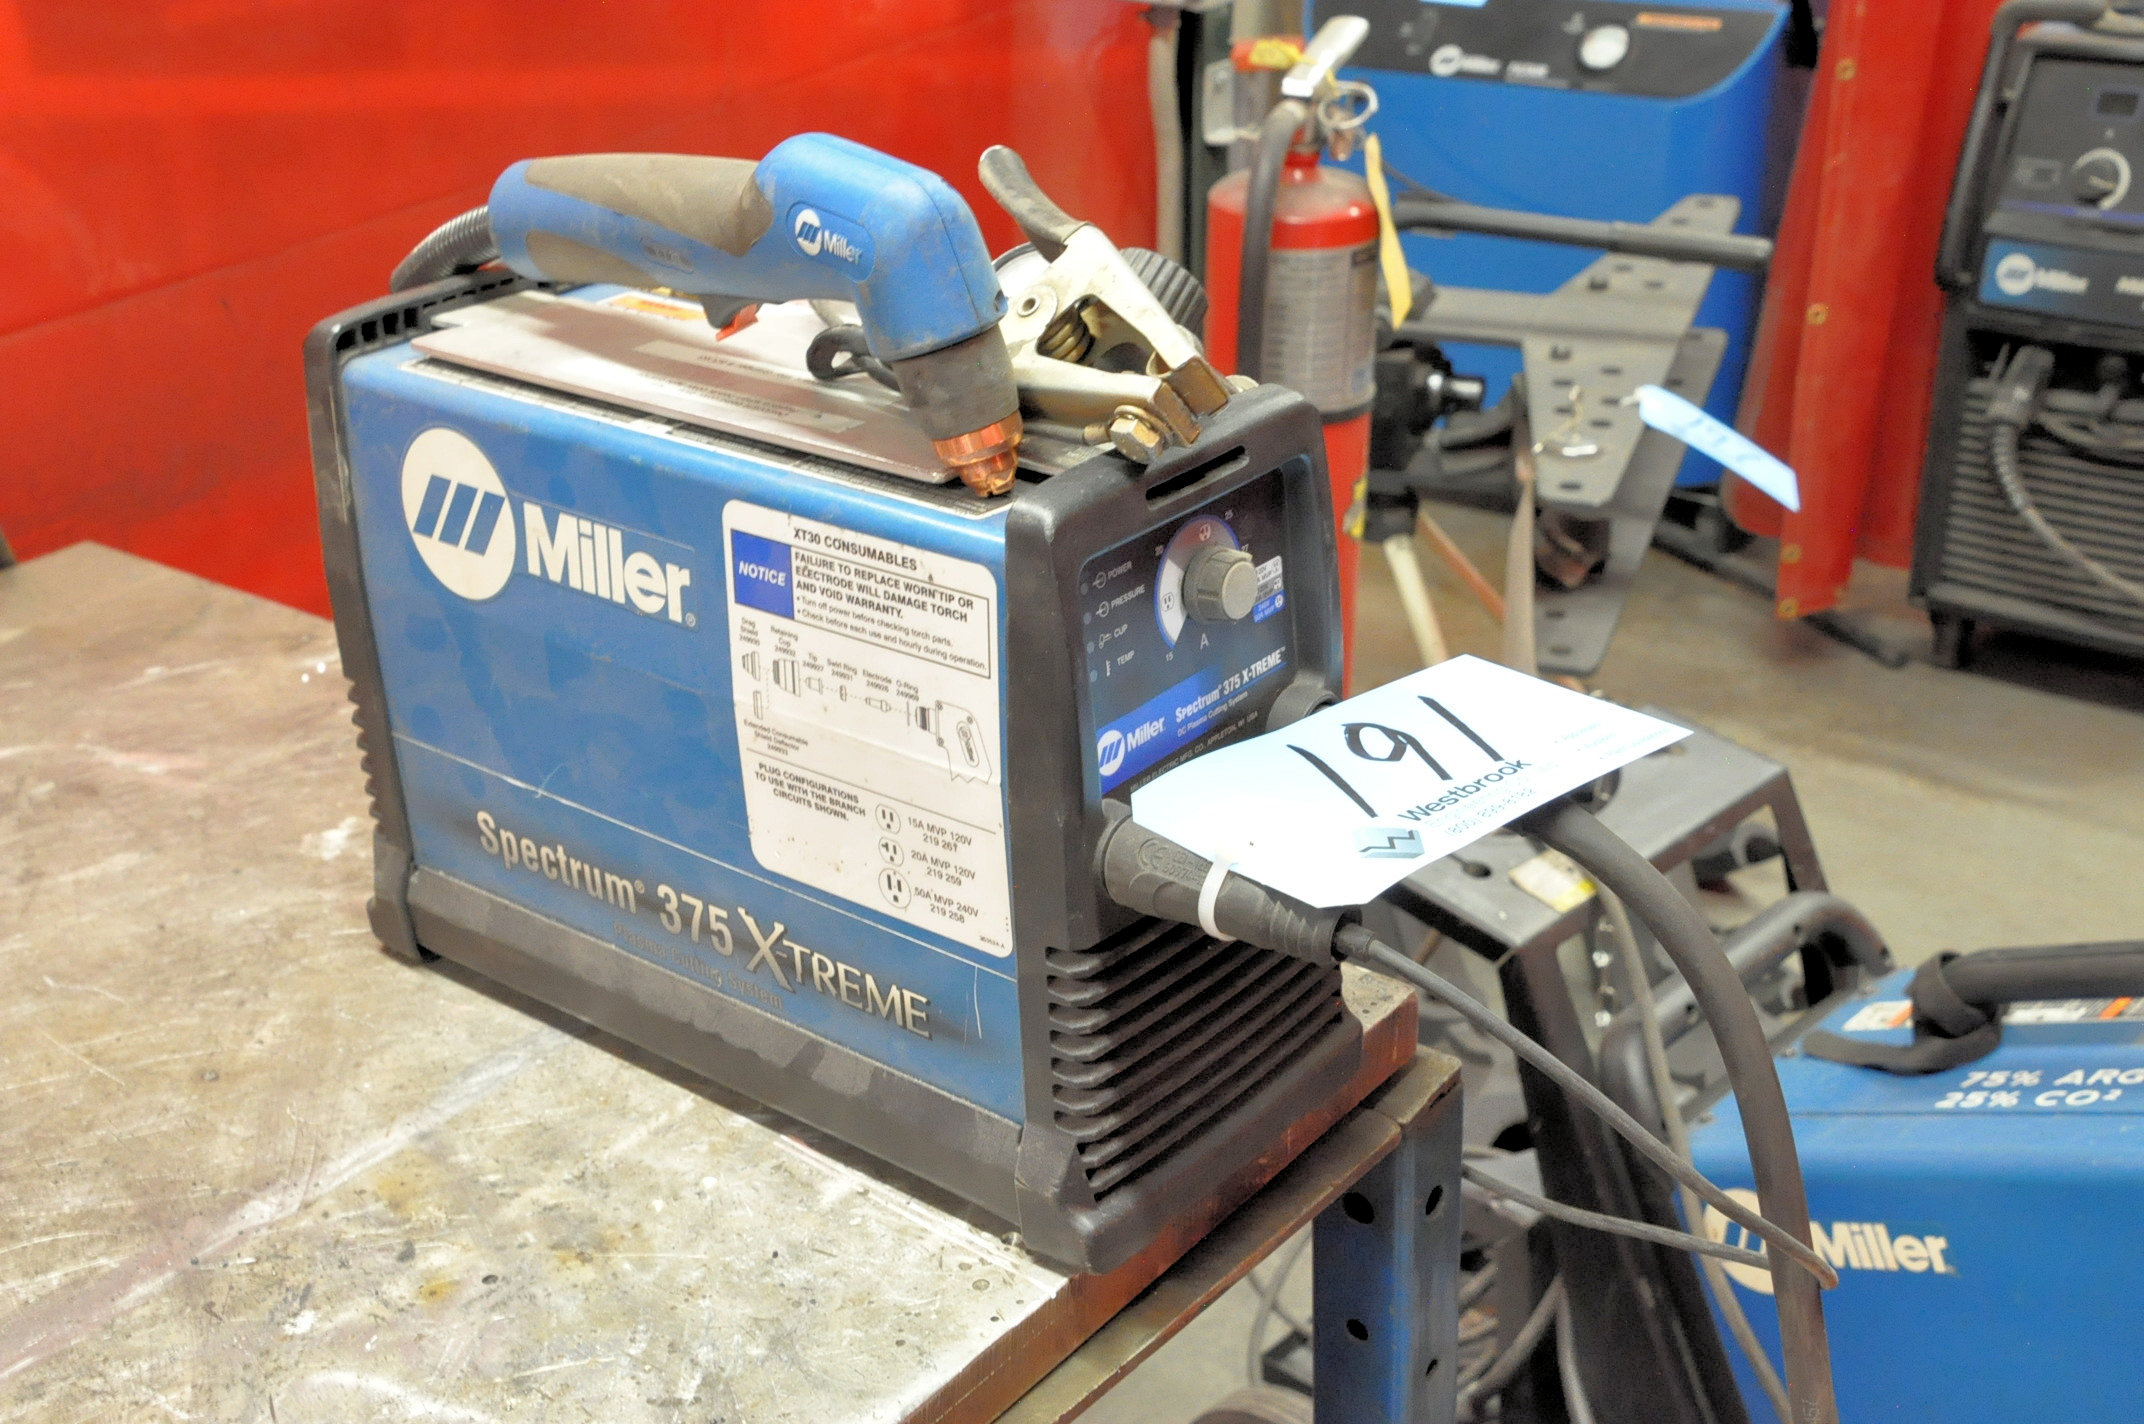 Miller Spectrum 375 X-Treme, Hand Held DC Plasma Cutting System with 110 Volt Adapter - Image 2 of 2